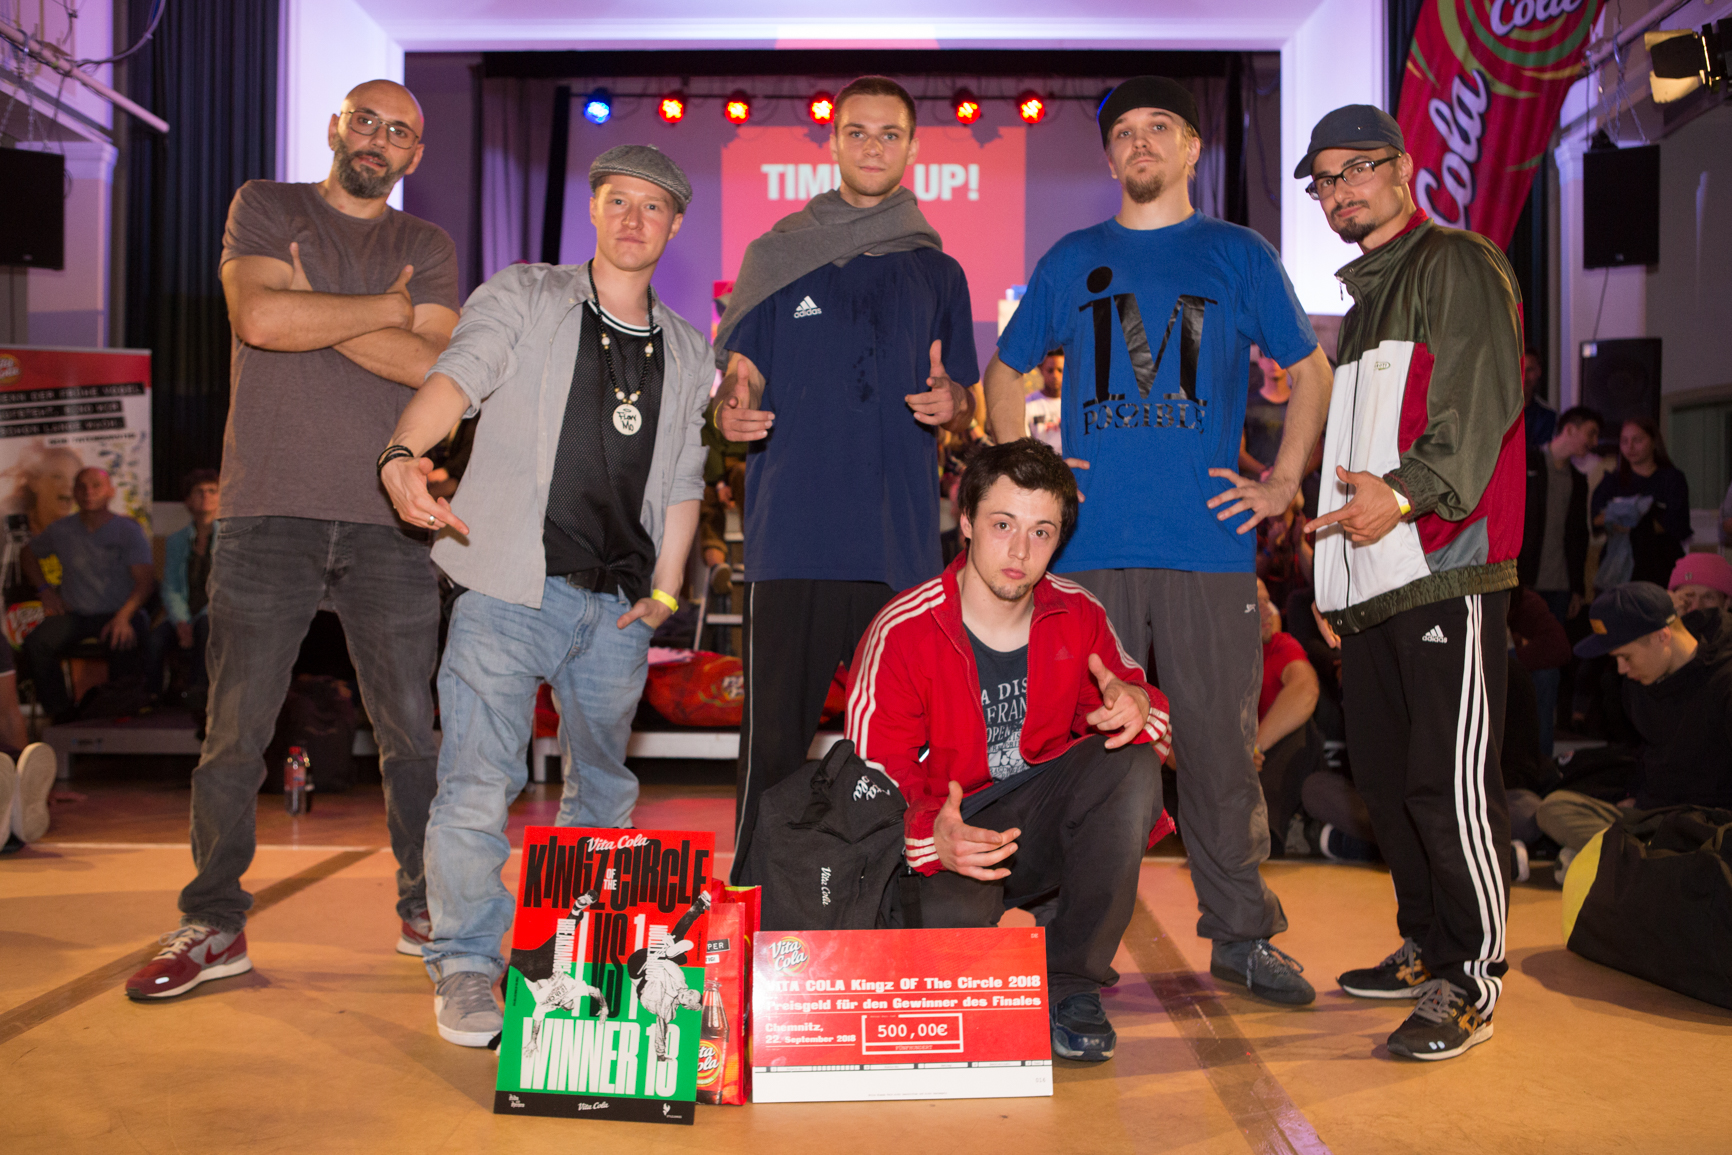 Impressionen vom Finale des VITA COLA Kingz Of The Circle 2018 (® Denis Liebscher)